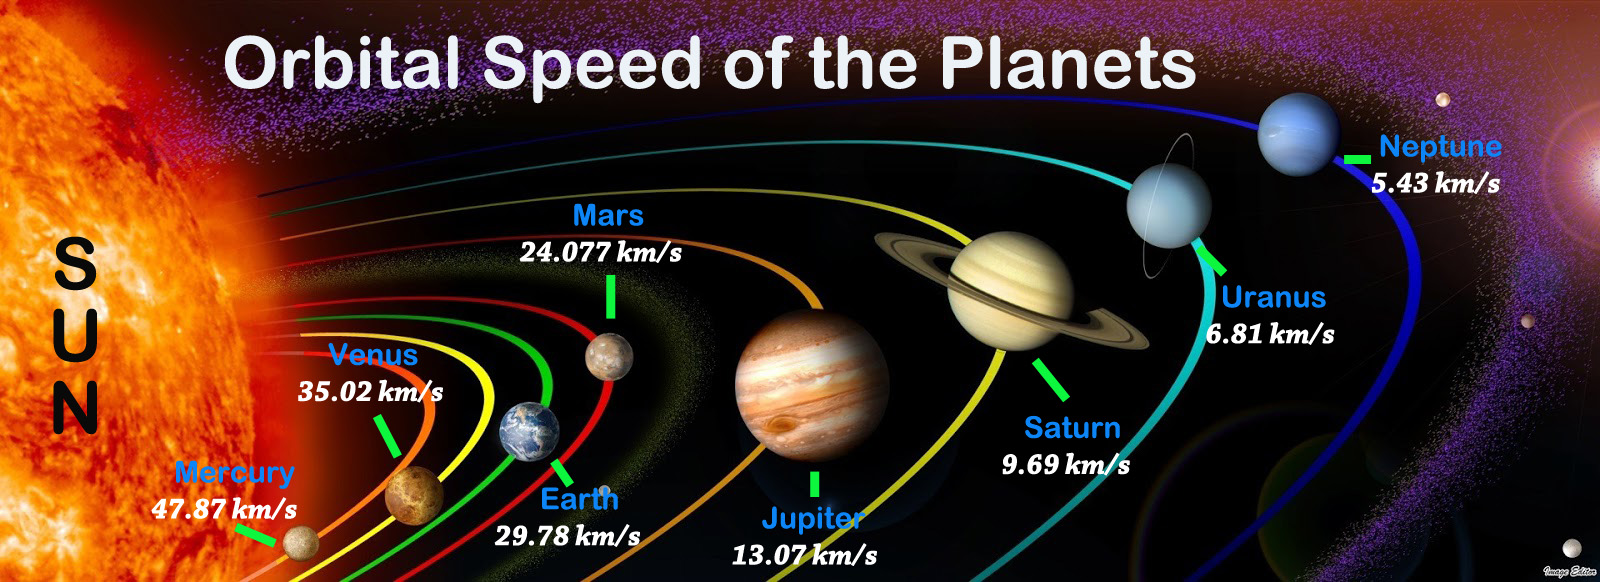 Planets Orbital Speeds